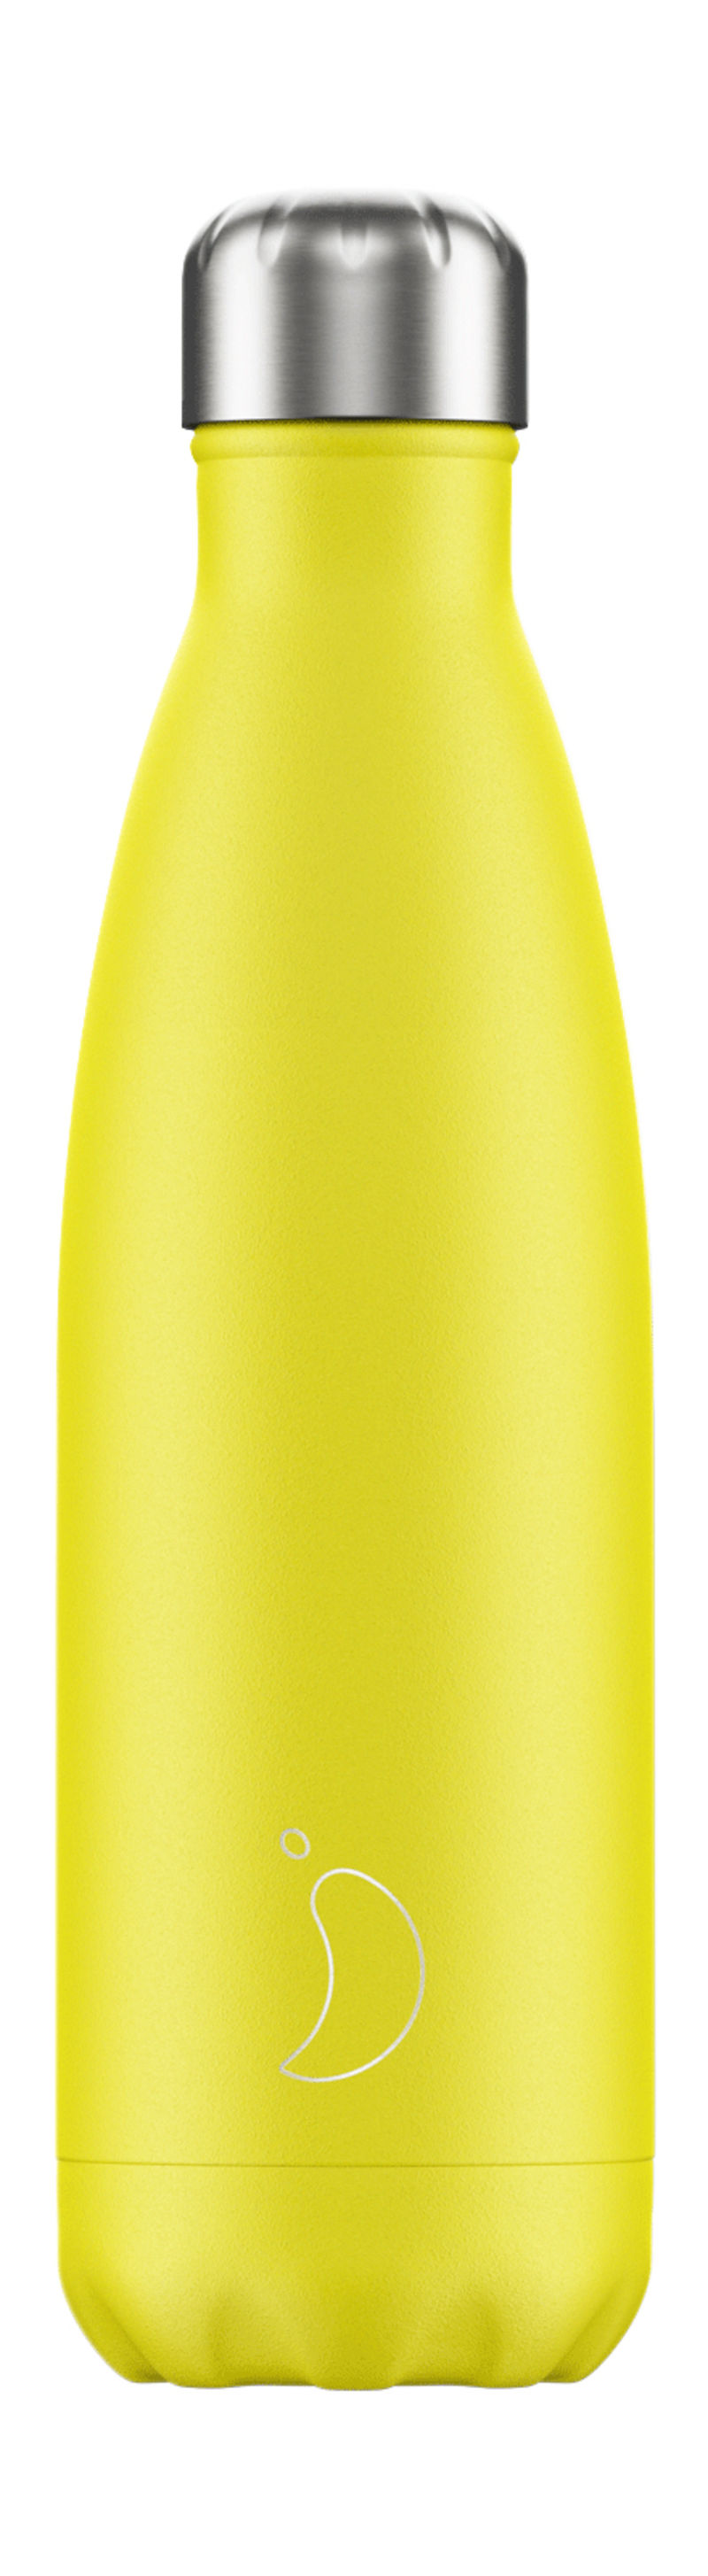 Botella Inox Amarillo Mate 500ml -